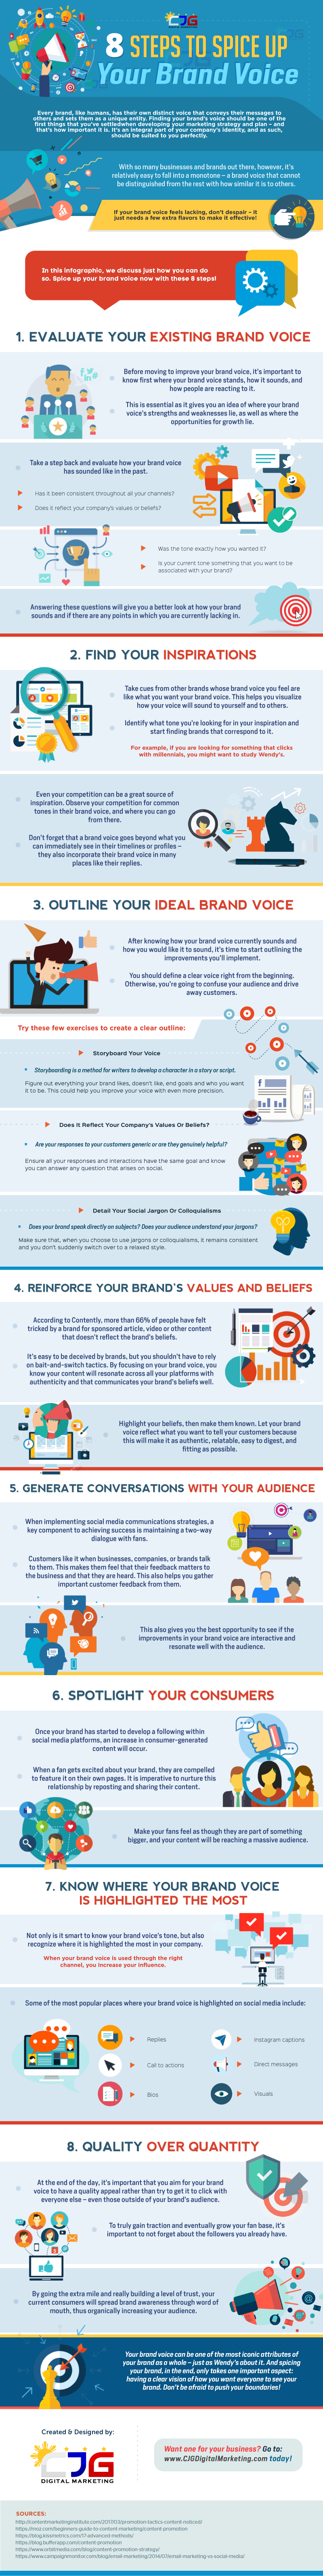 How to Enhance Your Brand Voice - Infographic